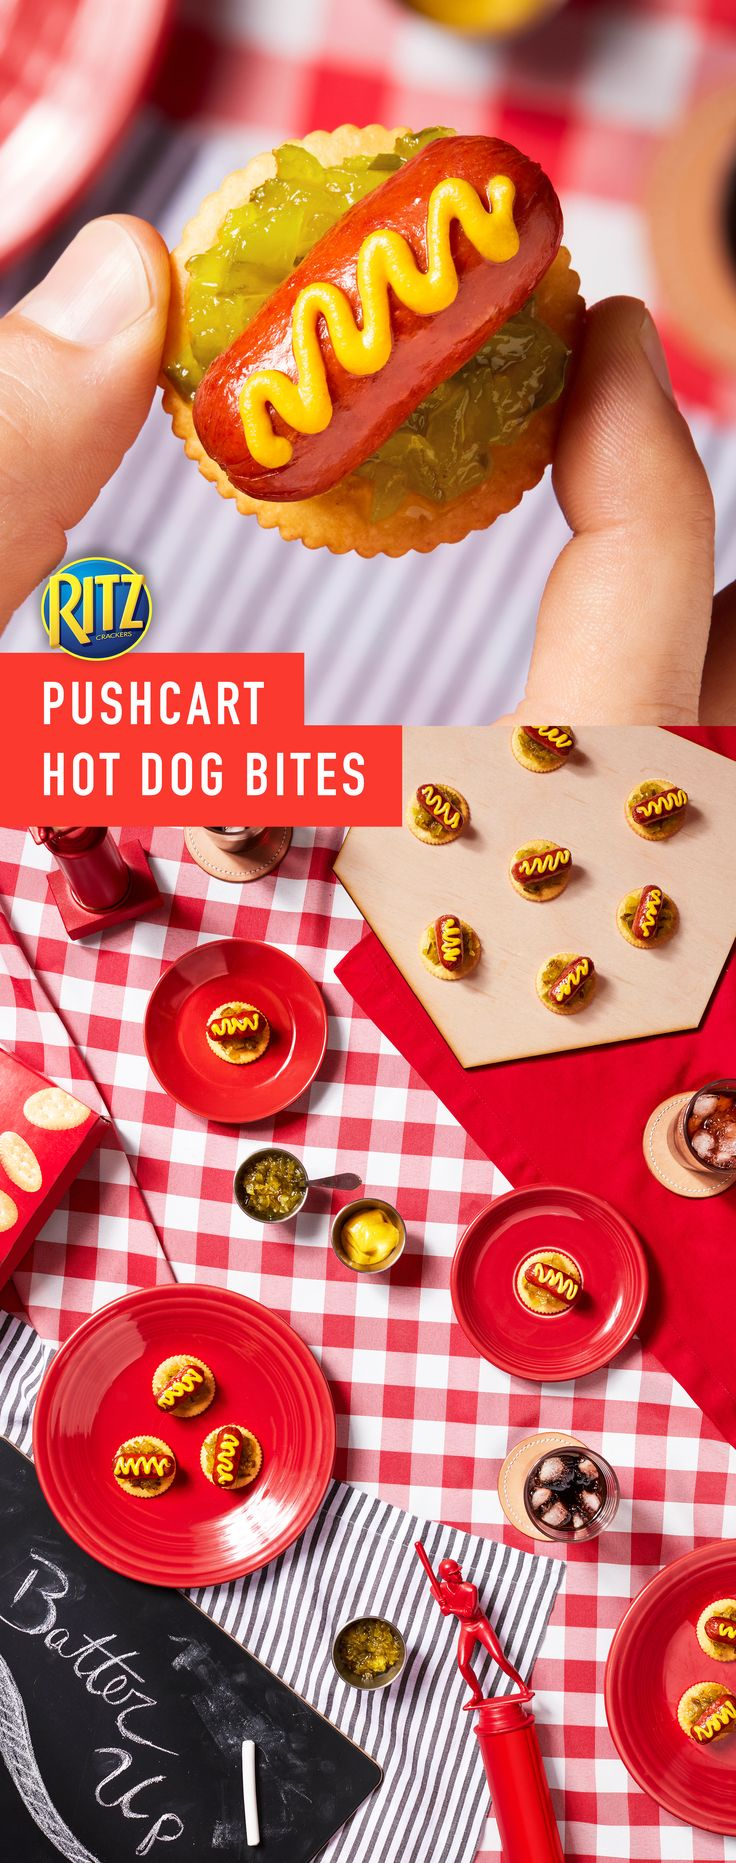 Nothing beats the beginning of a new baseball season! Celebrate spring baseball games with these delicious and simple Pushcart Hot Dog Bites! For your get-together, make a smoky, zesty appetizer that your friends and family can snack on anytime. Just follow these simple instructions: Place 12 franks cut sides down in single layer on microwaveable plate. Microwave on HIGH for 20 seconds. Top crackers with relish, frank pieces & mustard. You've got the stuff to make life rich.